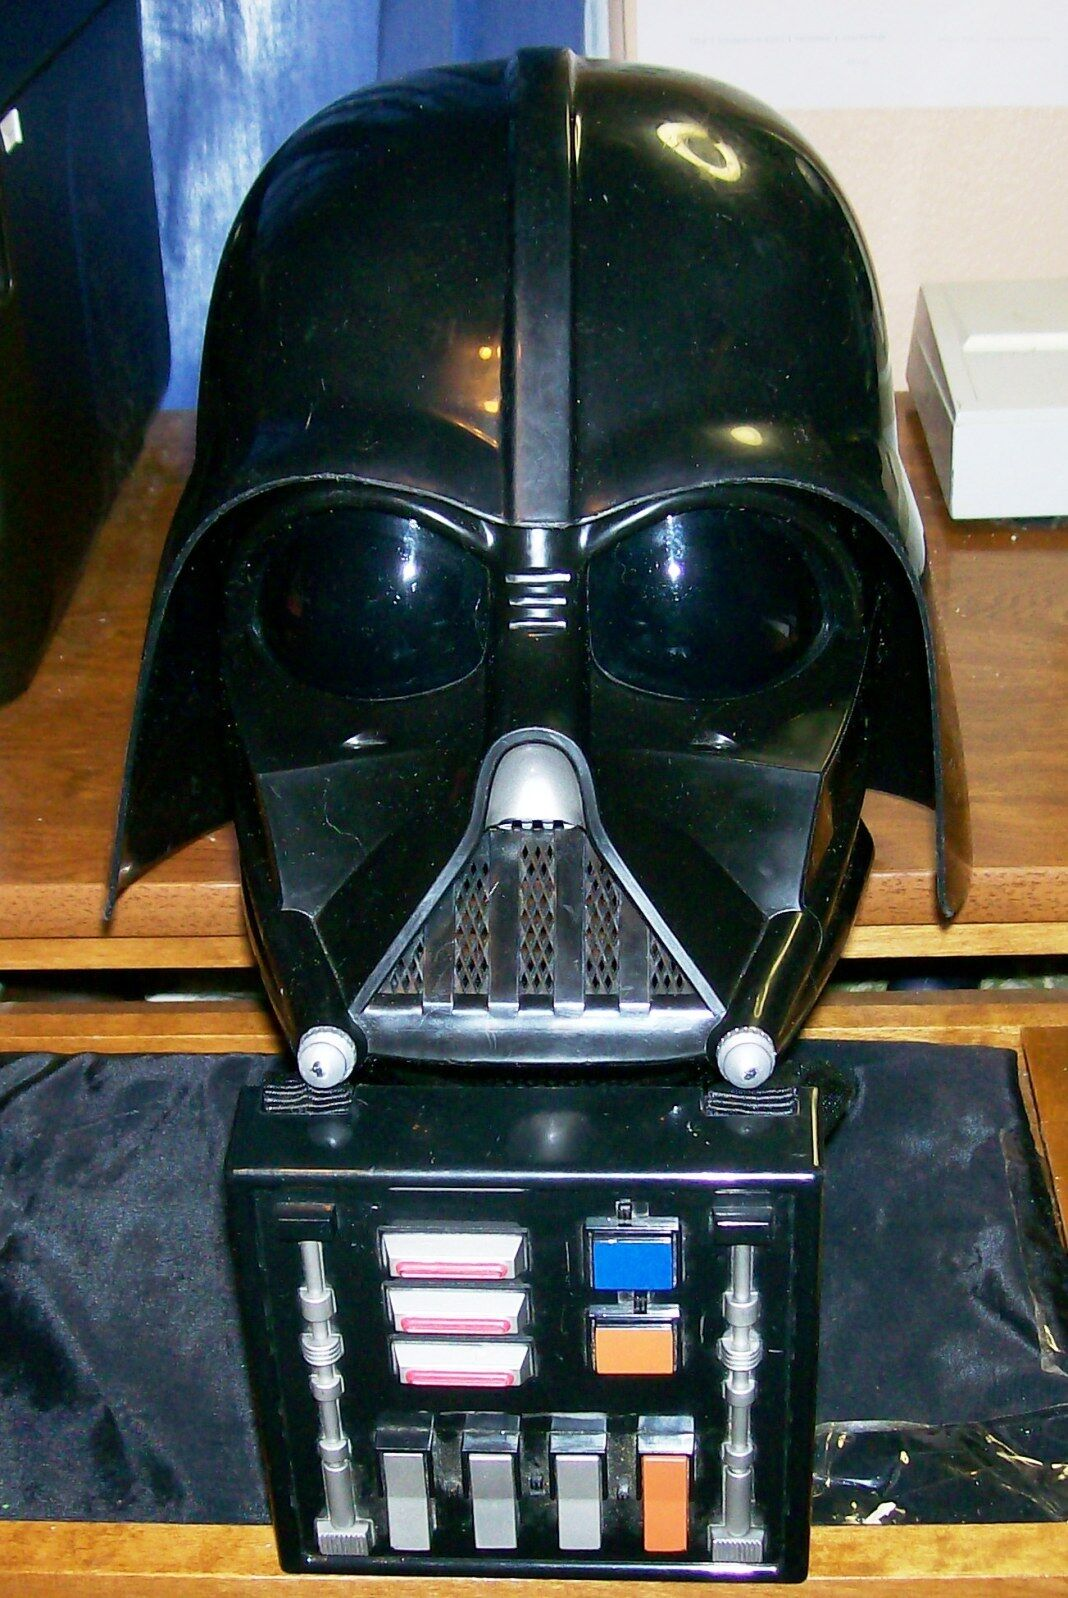 Star - wars - darth vader visuelle getönten helm w   schlacht auf w   voice & sound minze